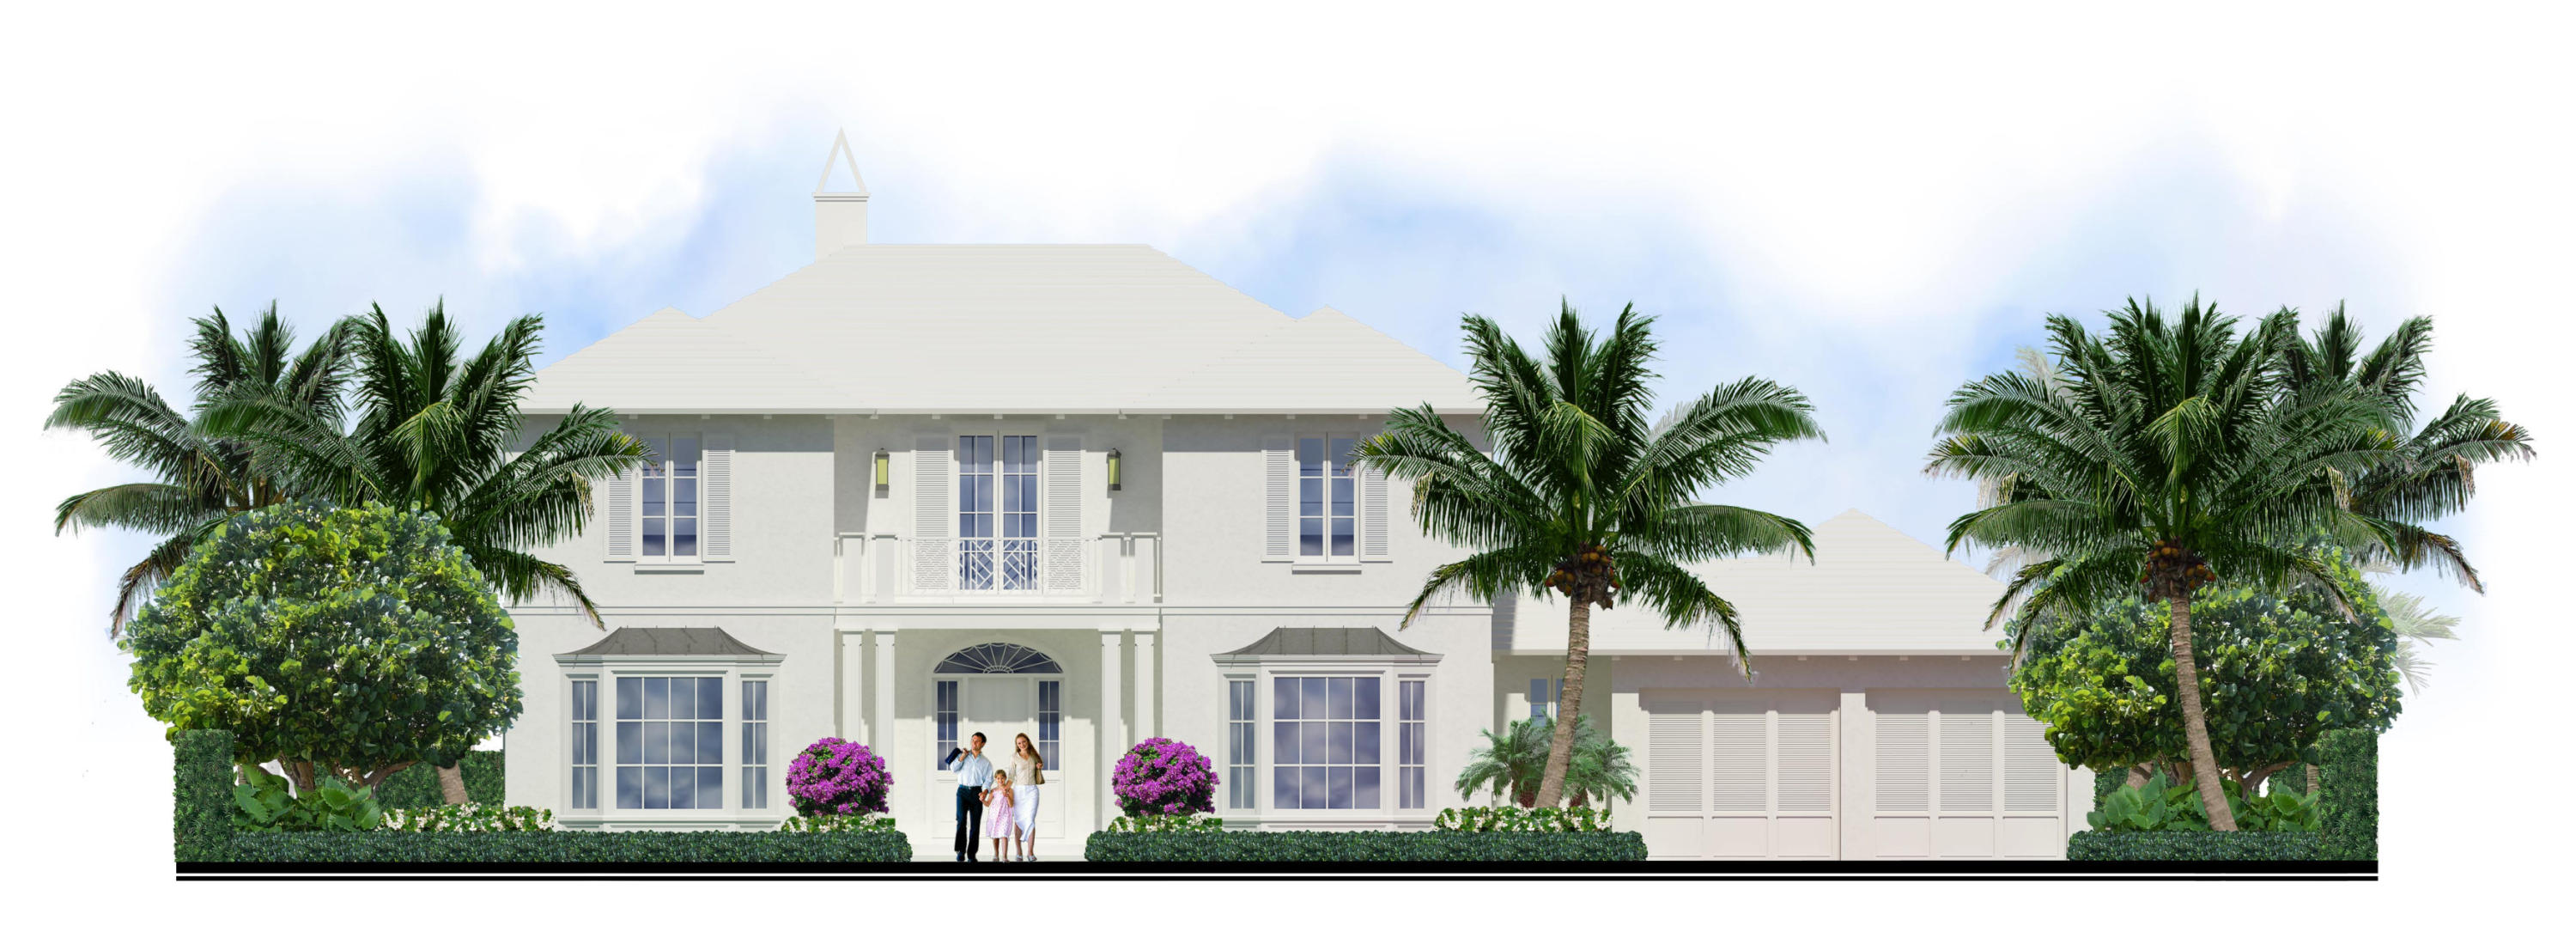 New Home for sale at 218 La Puerta Way in Palm Beach